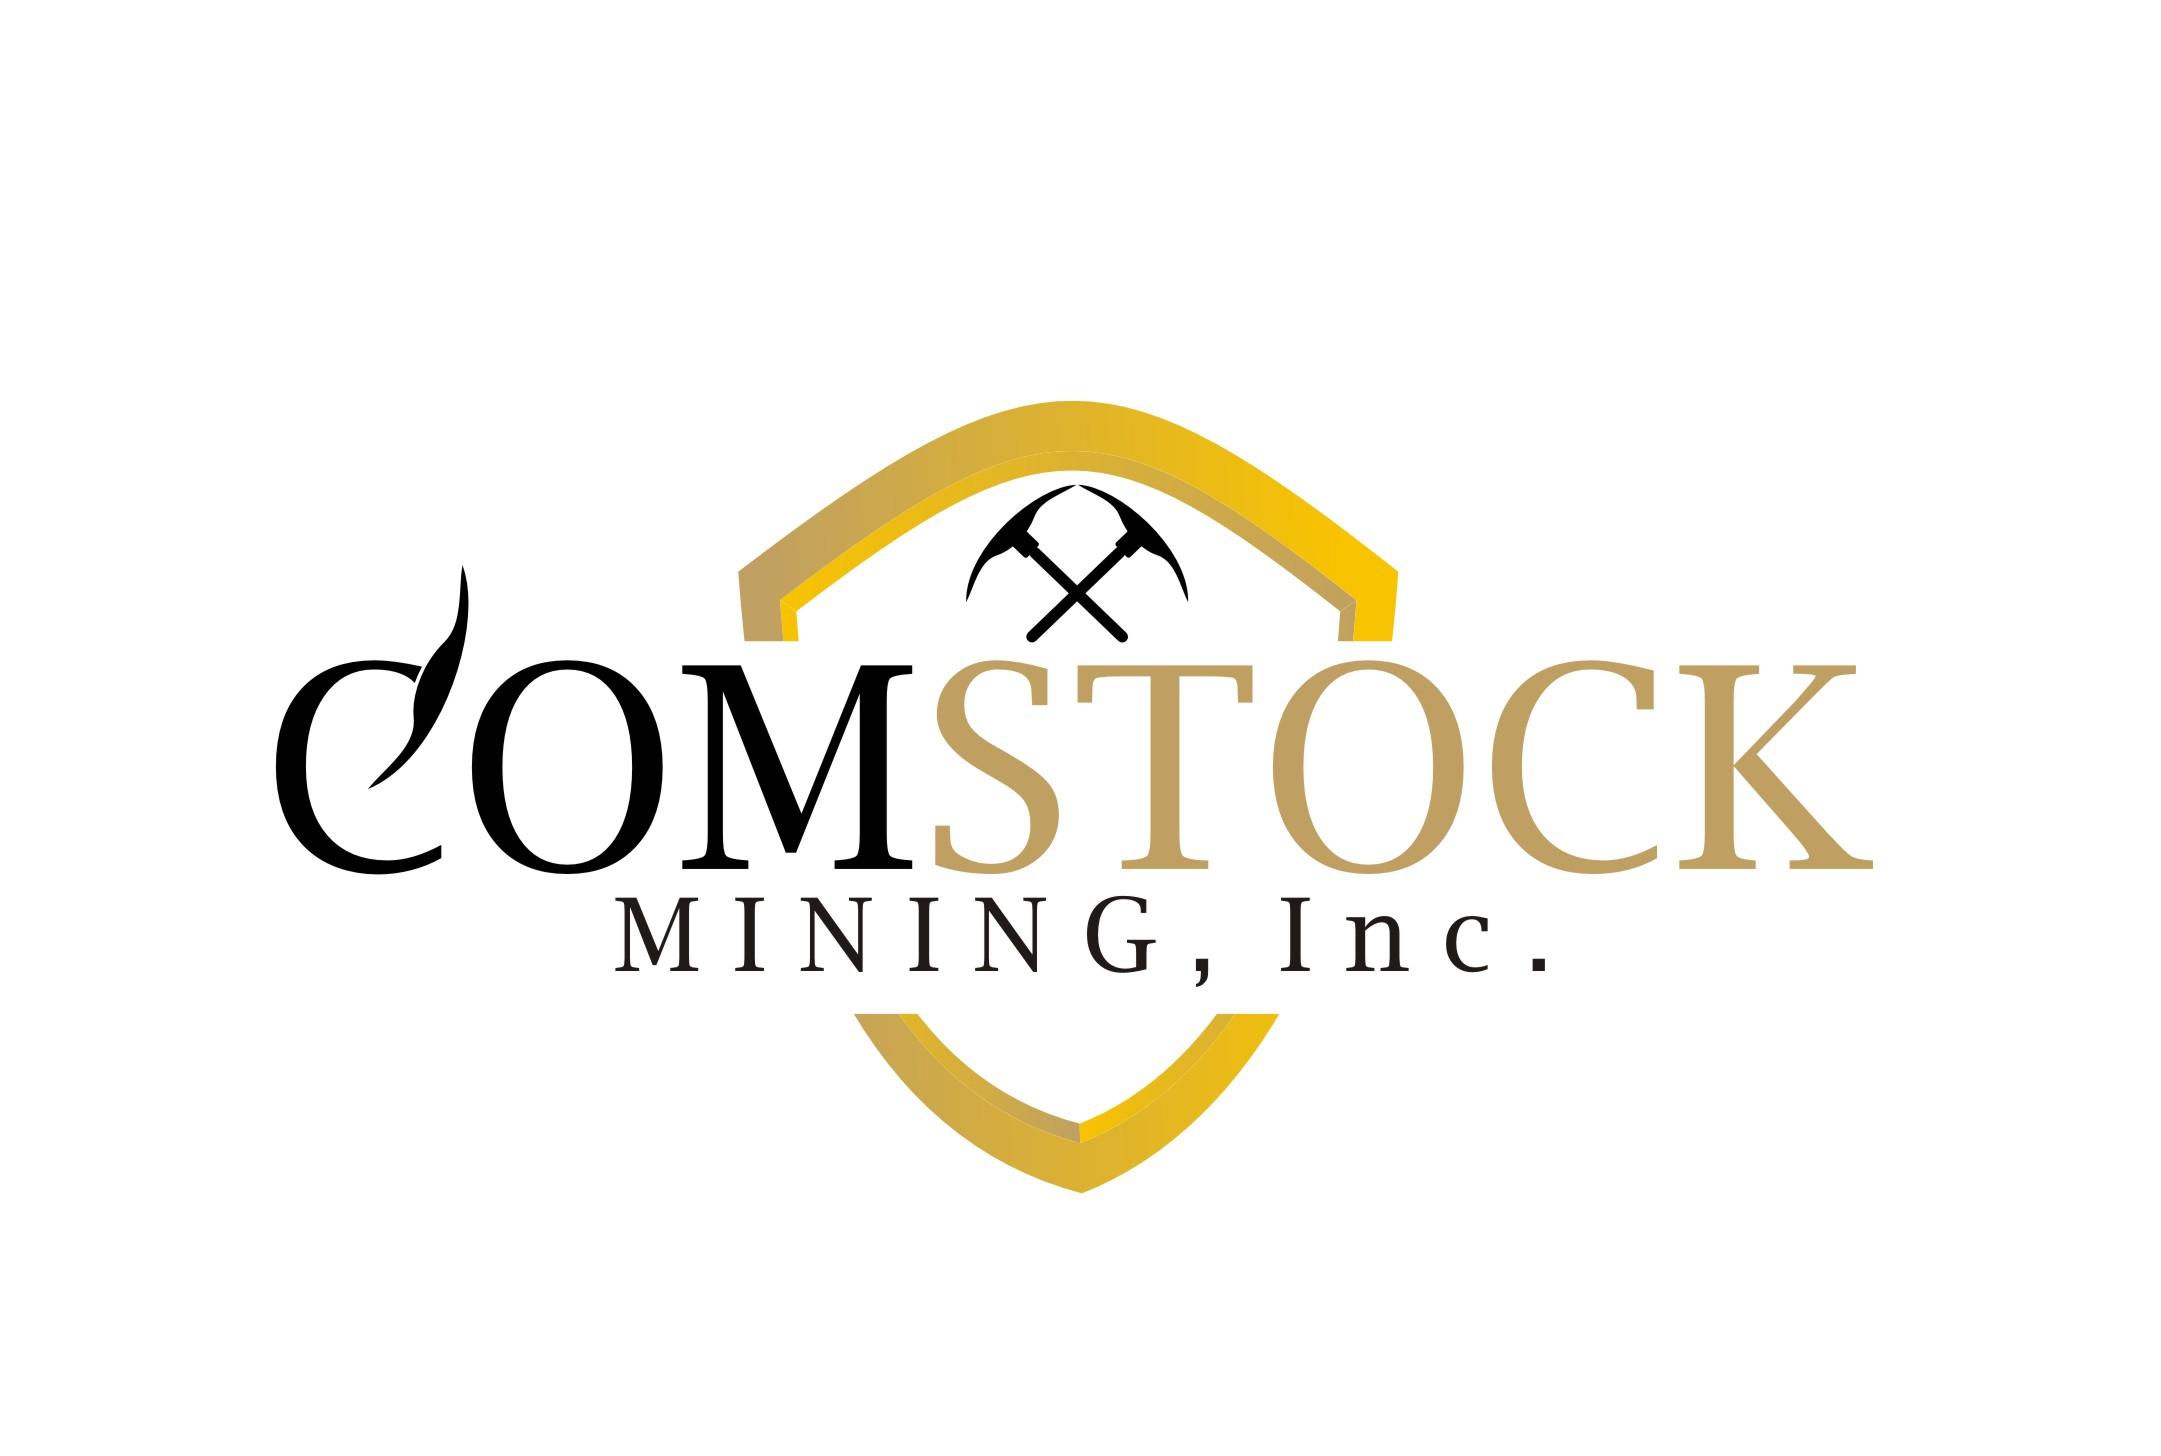 Logo Design by Yuda Hermawan - Entry No. 151 in the Logo Design Contest Captivating Logo Design for Comstock Mining, Inc..